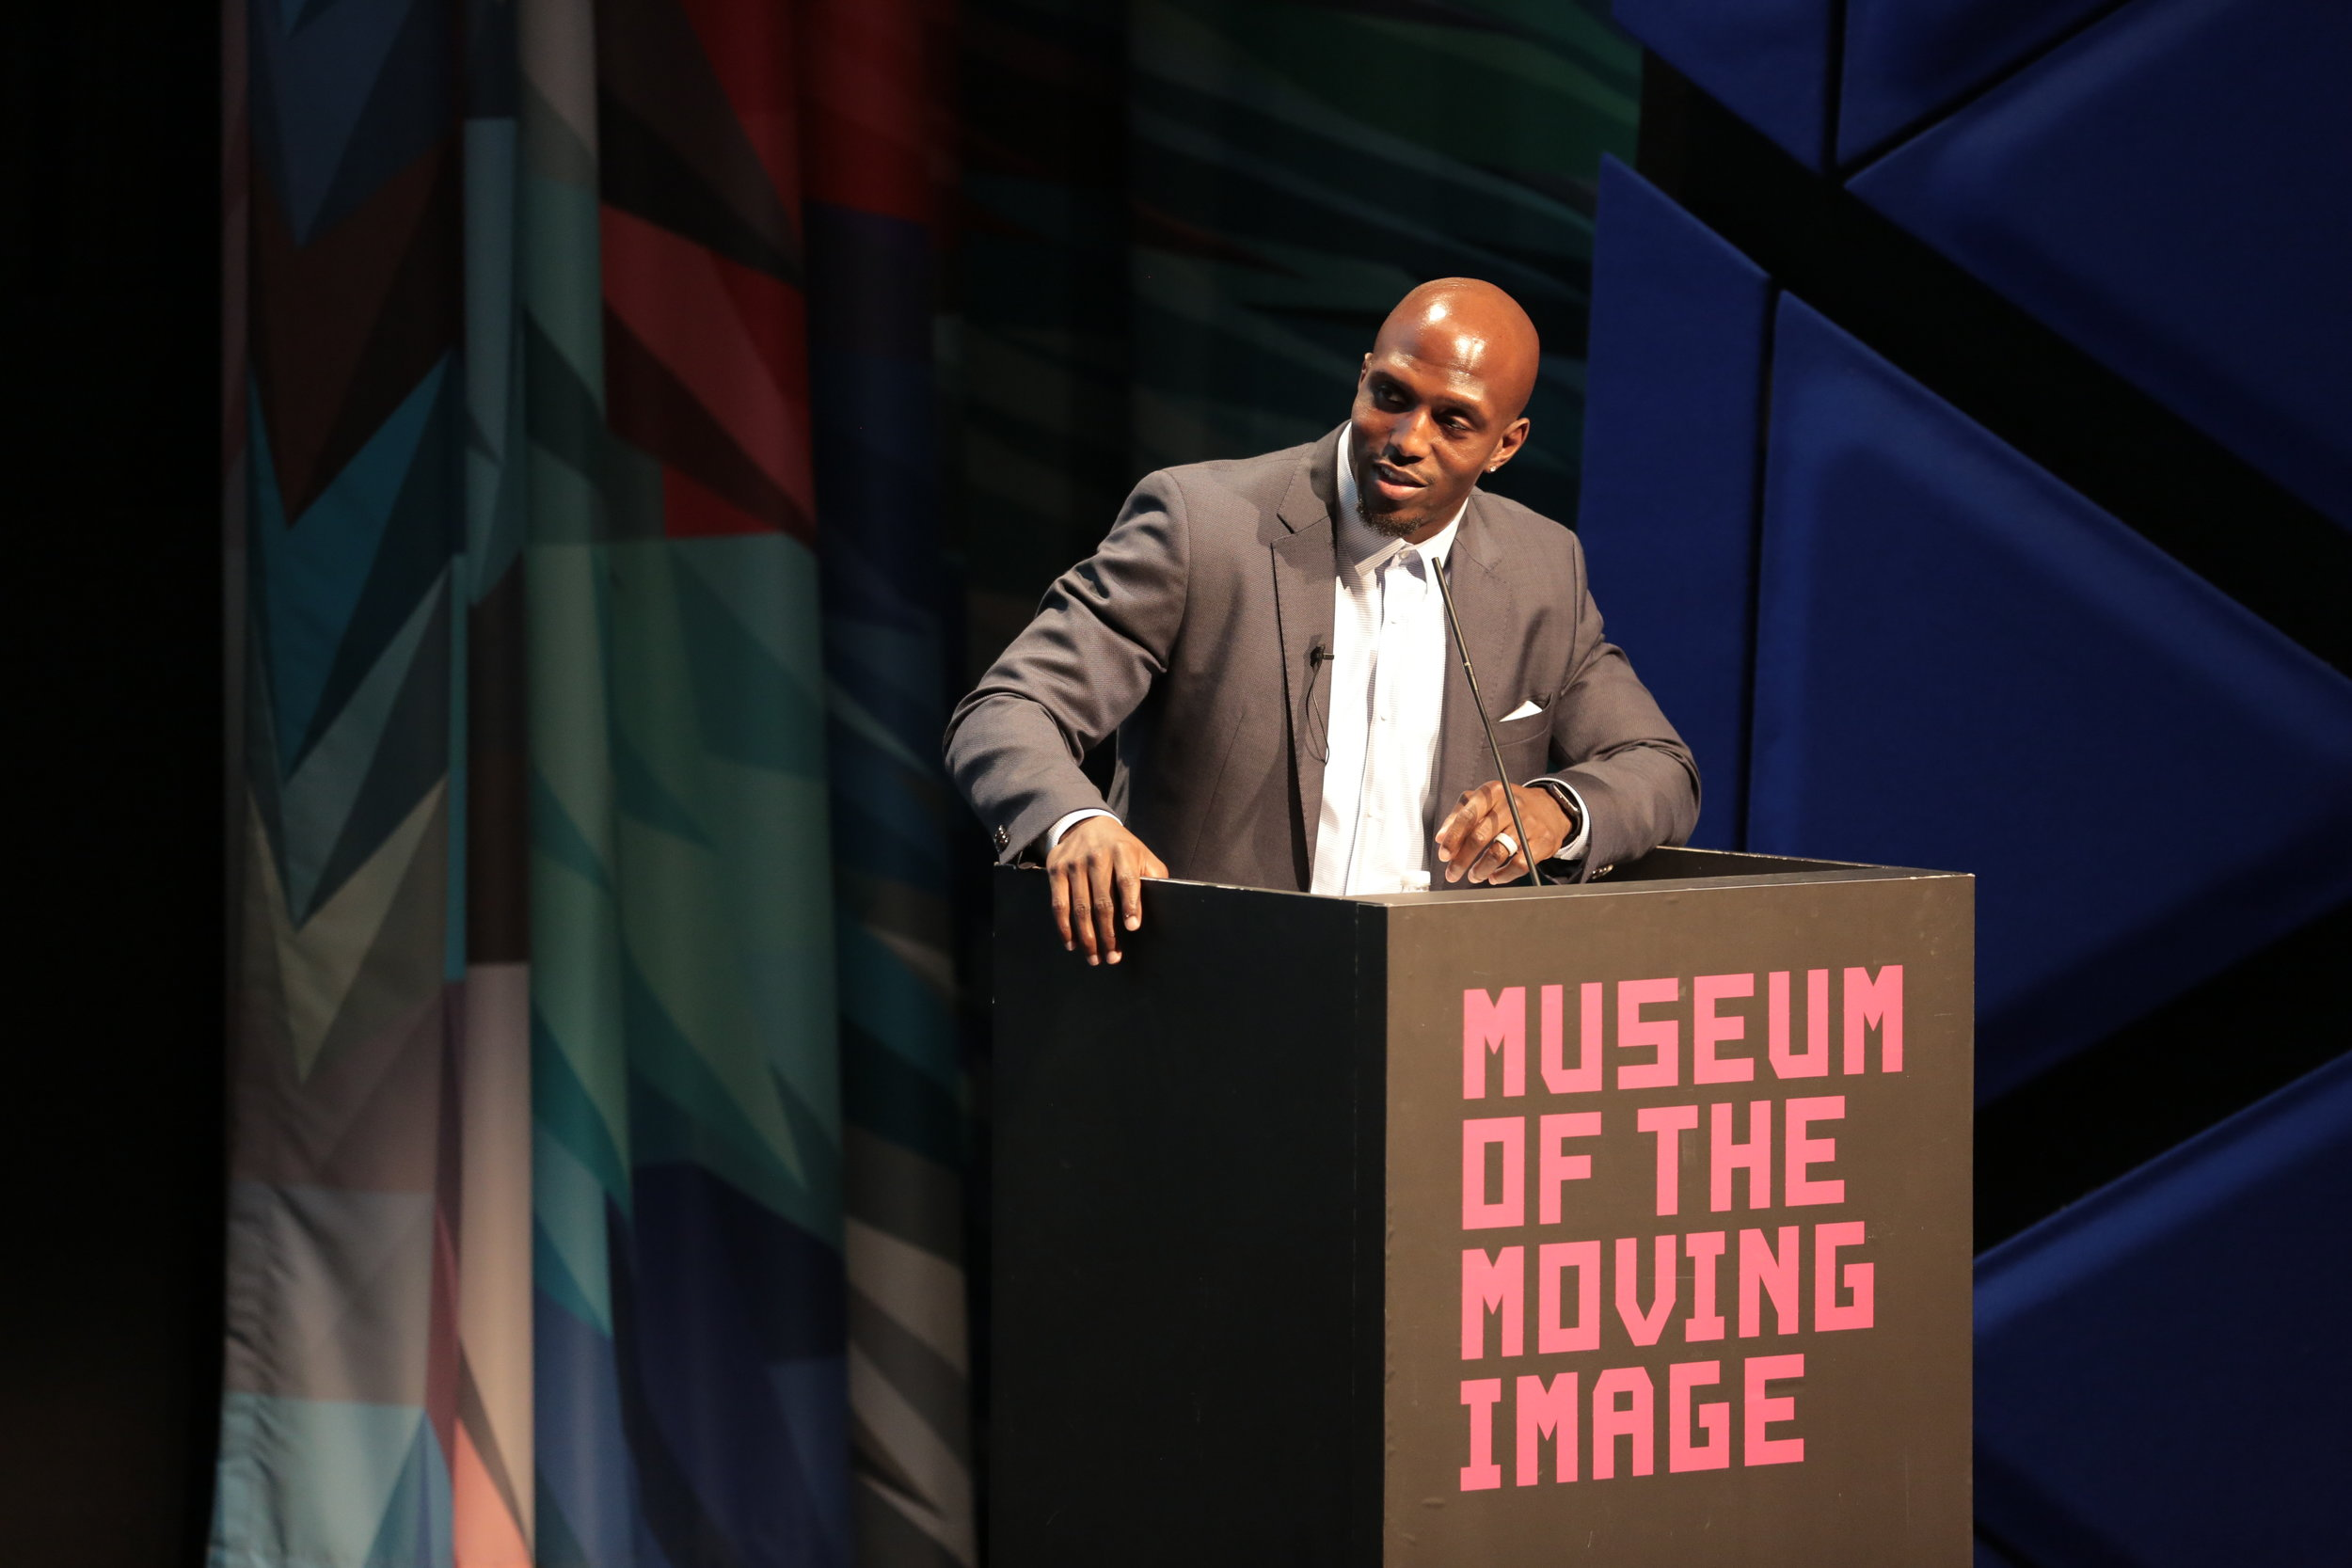 NFL player Devin McCourty moderates a DA candidates forum on May 1 at the Museum of the Moving Image. Photos courtesy of the Players Coalition.